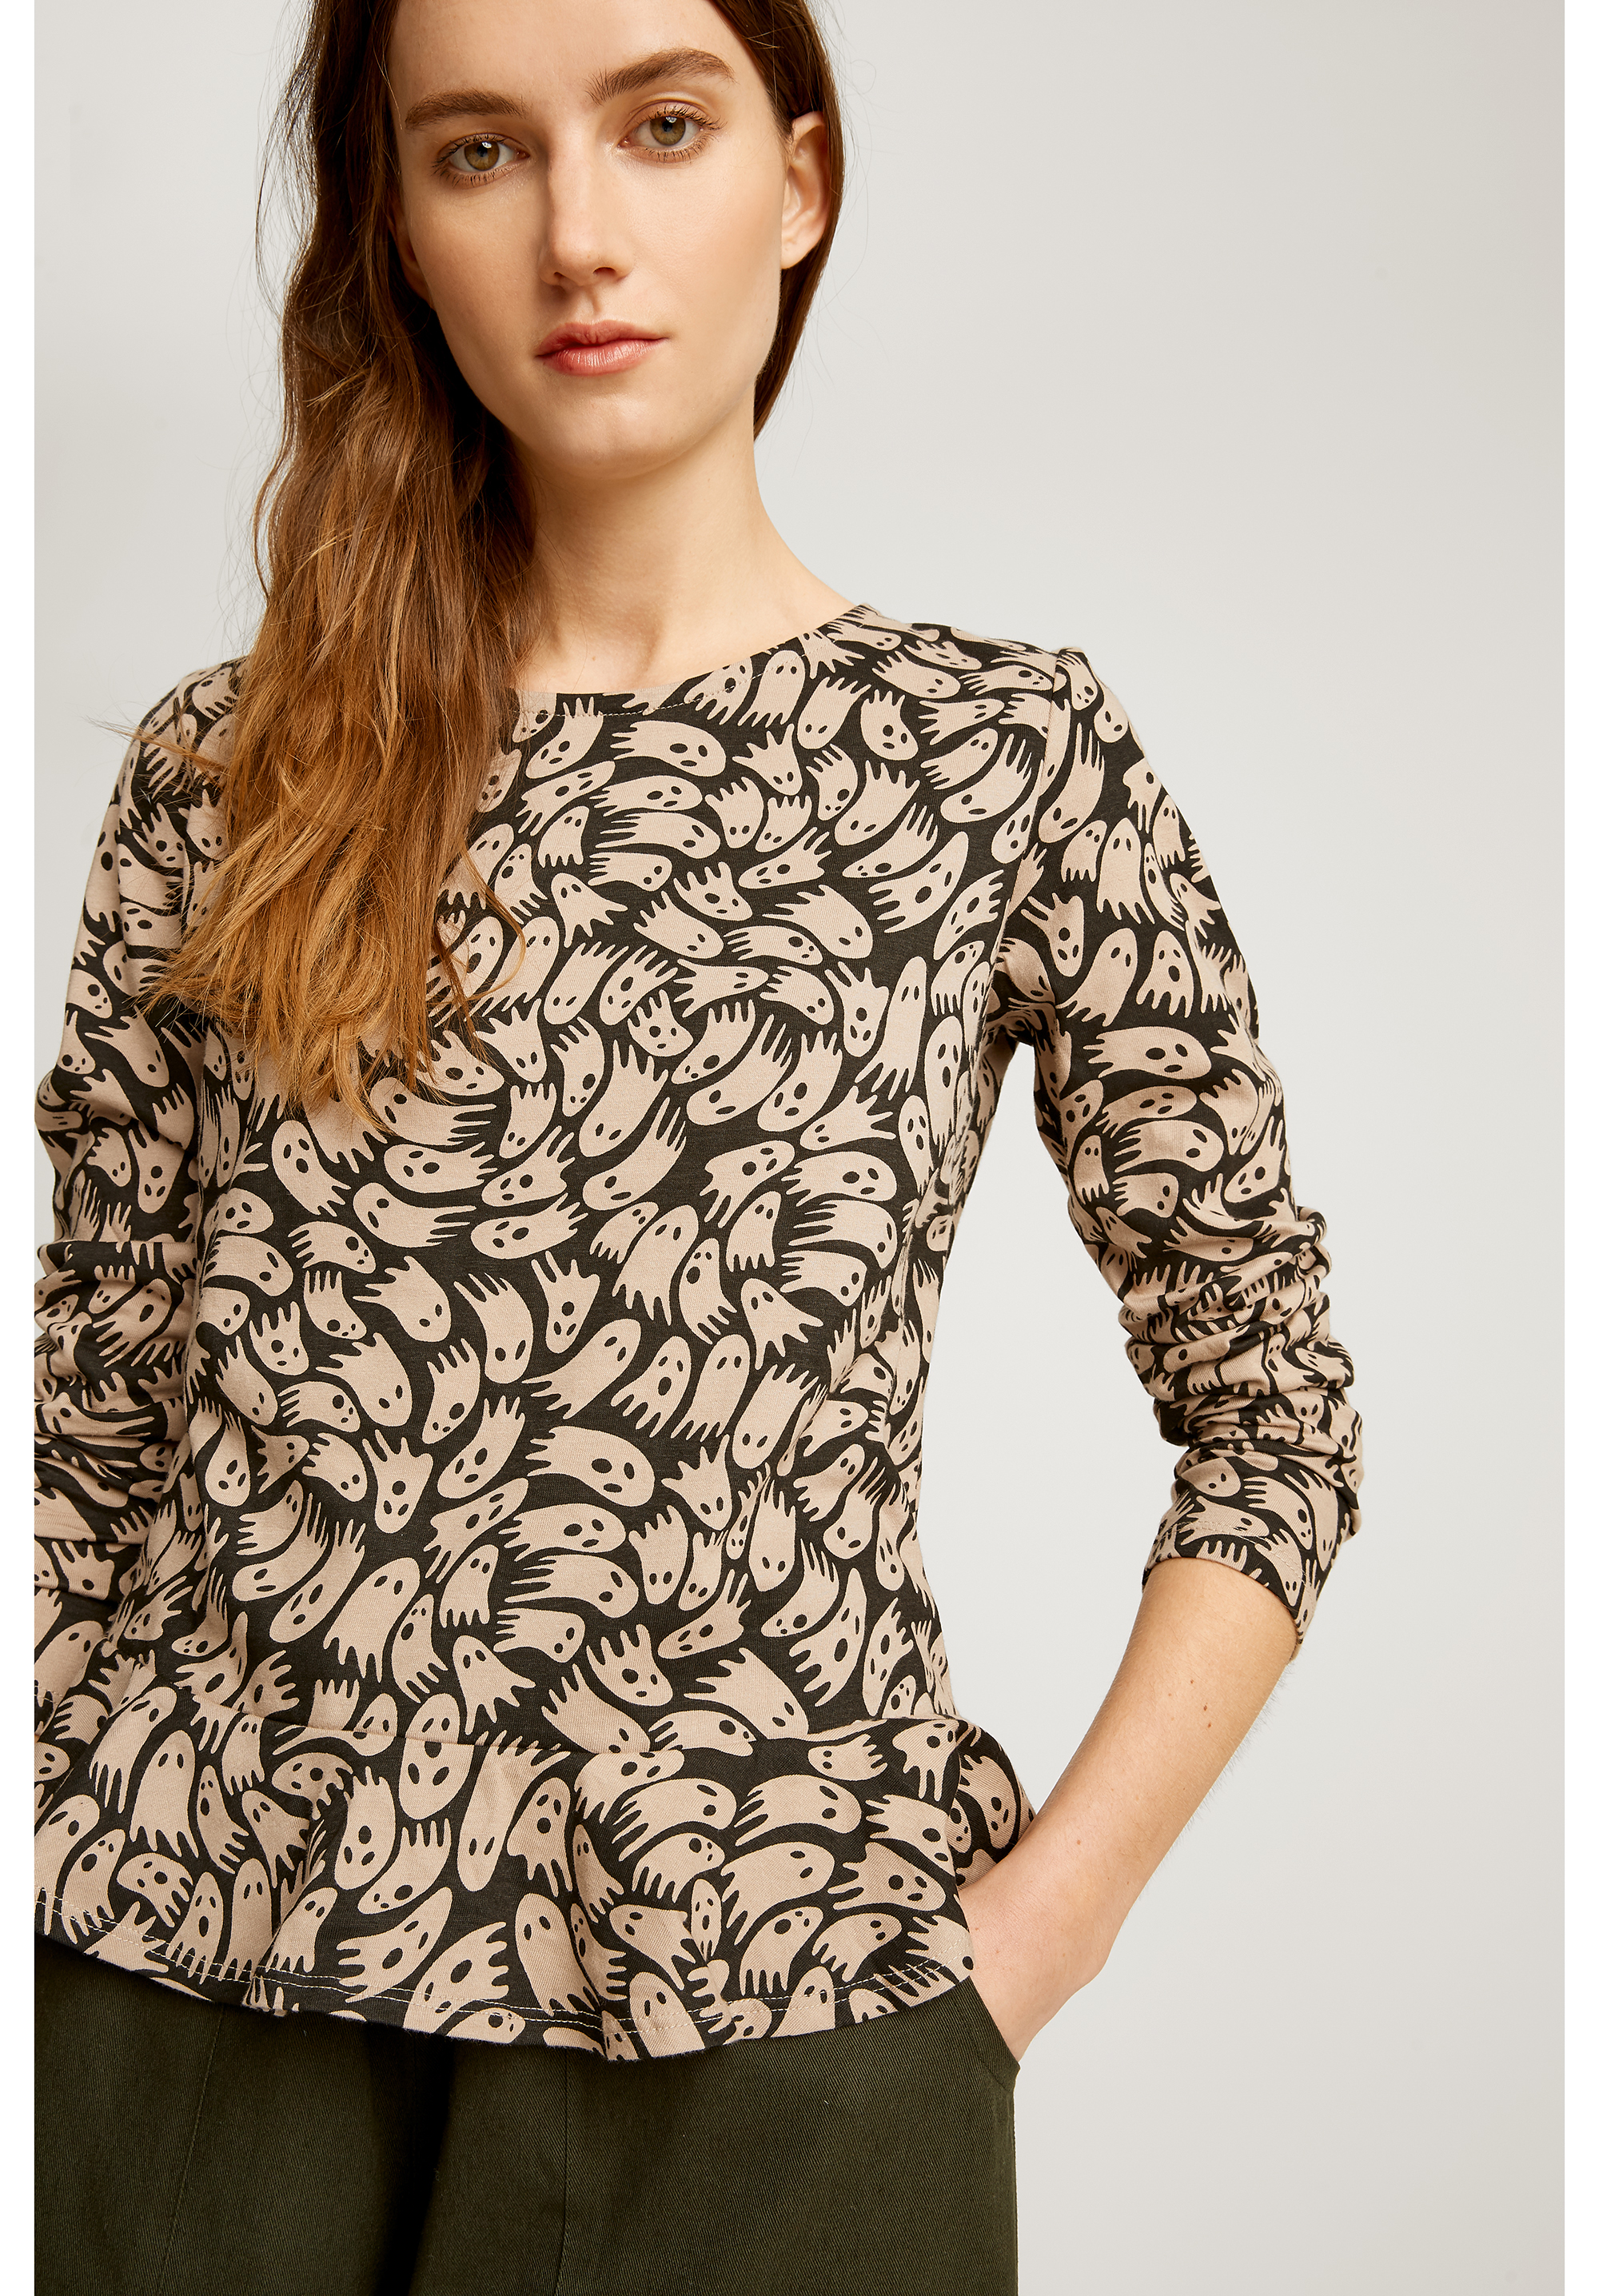 Peter Jensen Ghost Frill Top from People Tree